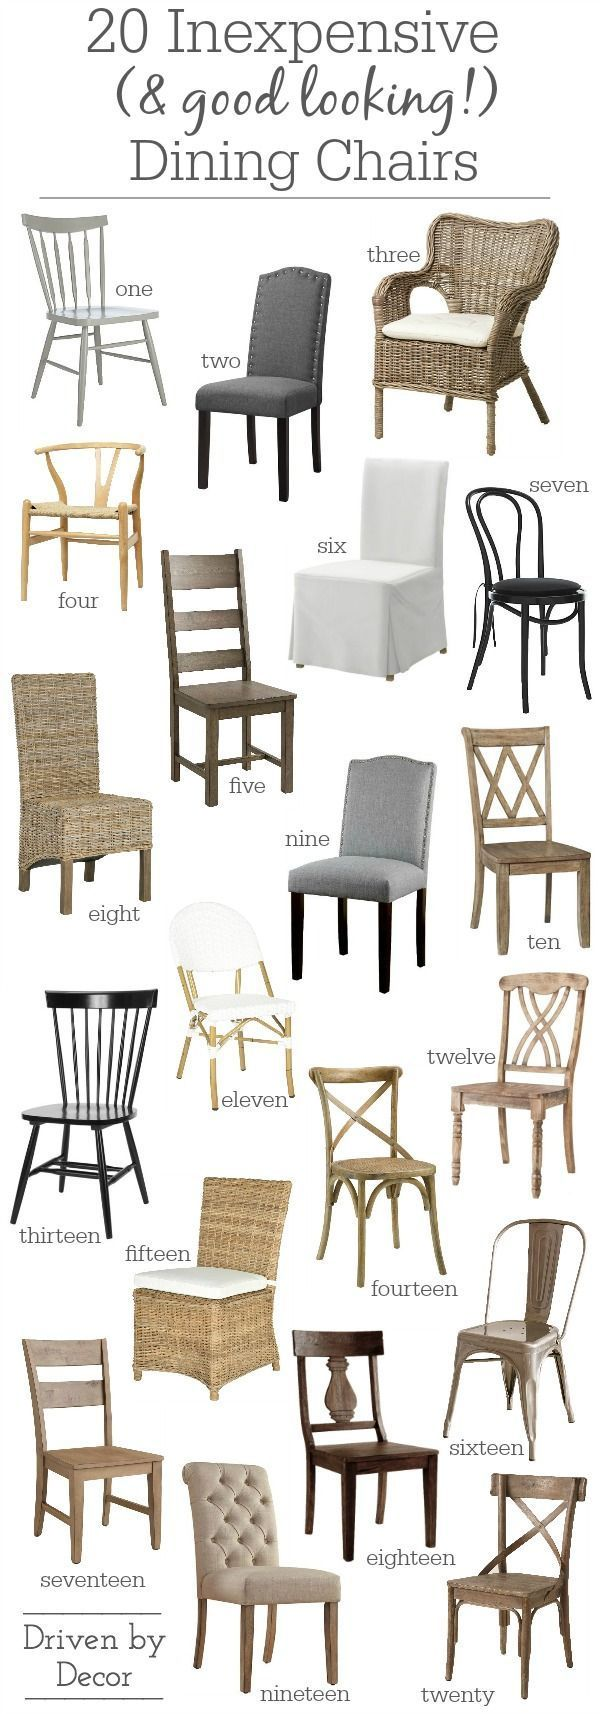 20 Inexpensive Dining Chairs (That Donu0027t Look Cheap Part 54